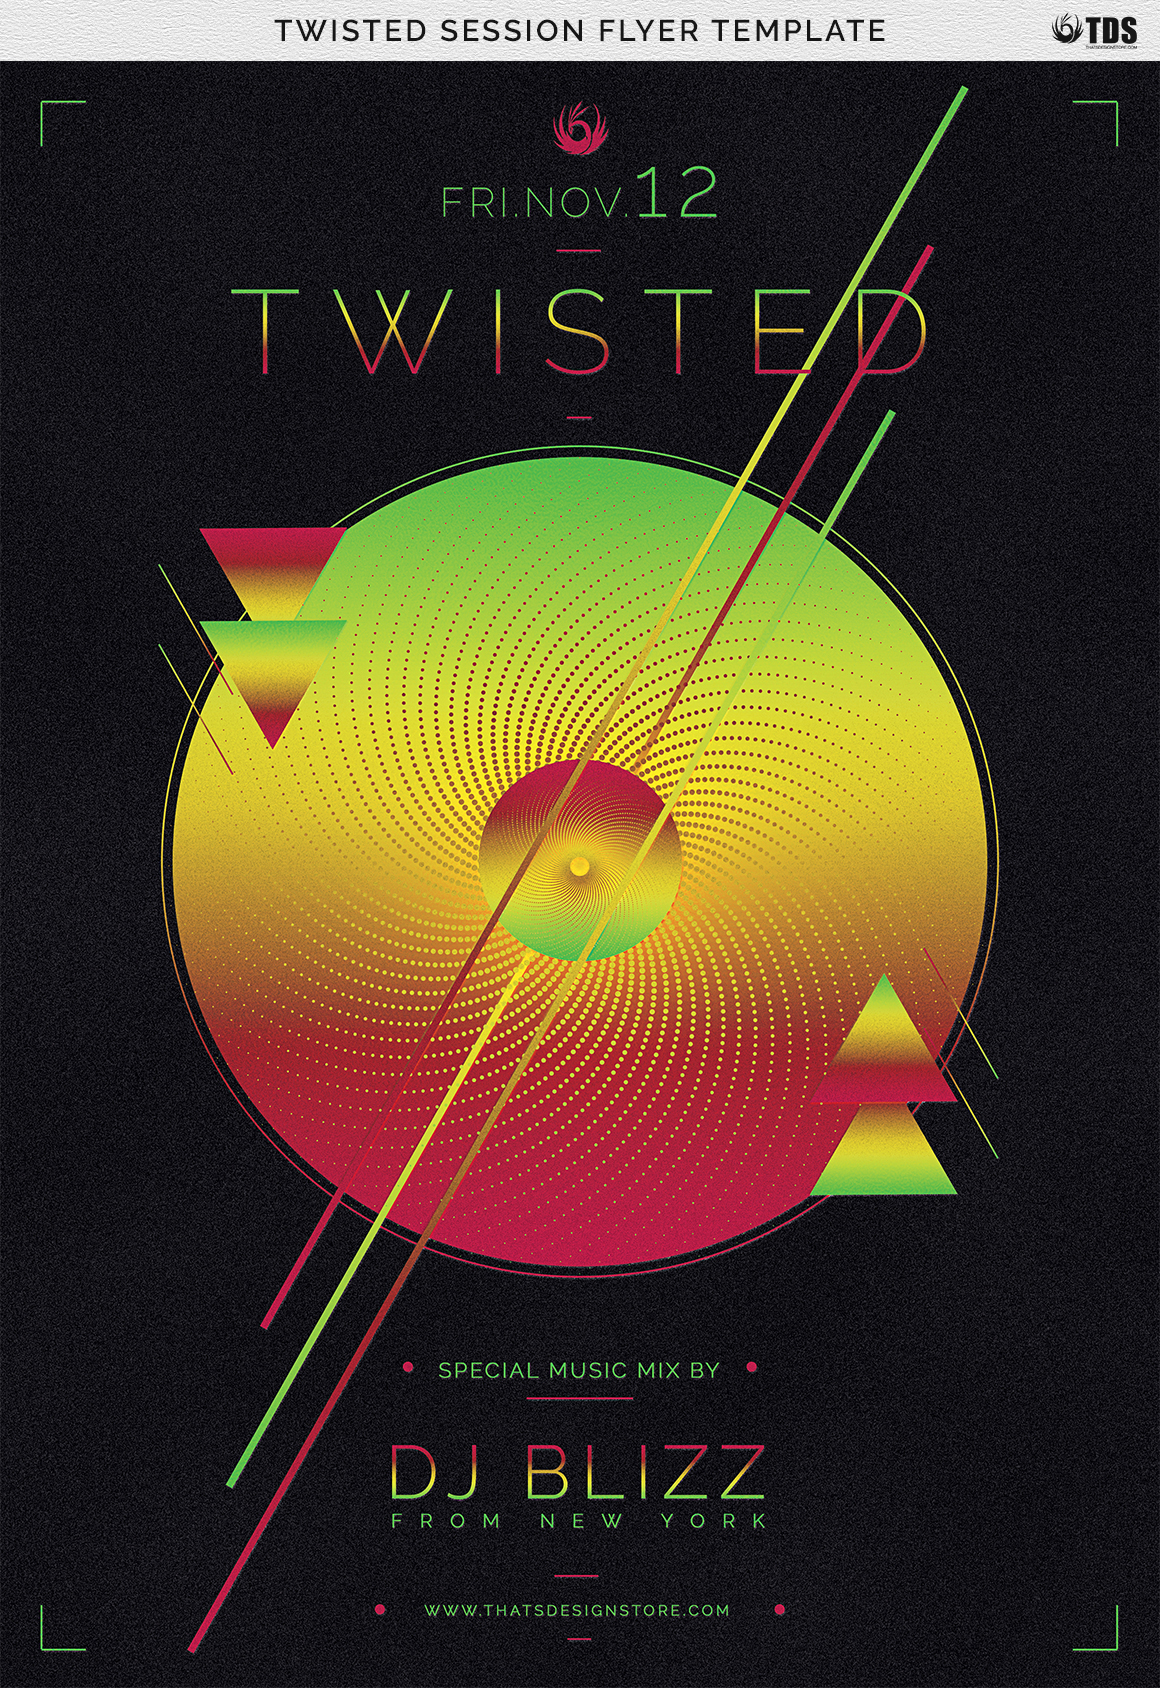 Twisted Session Flyer Template example image 11